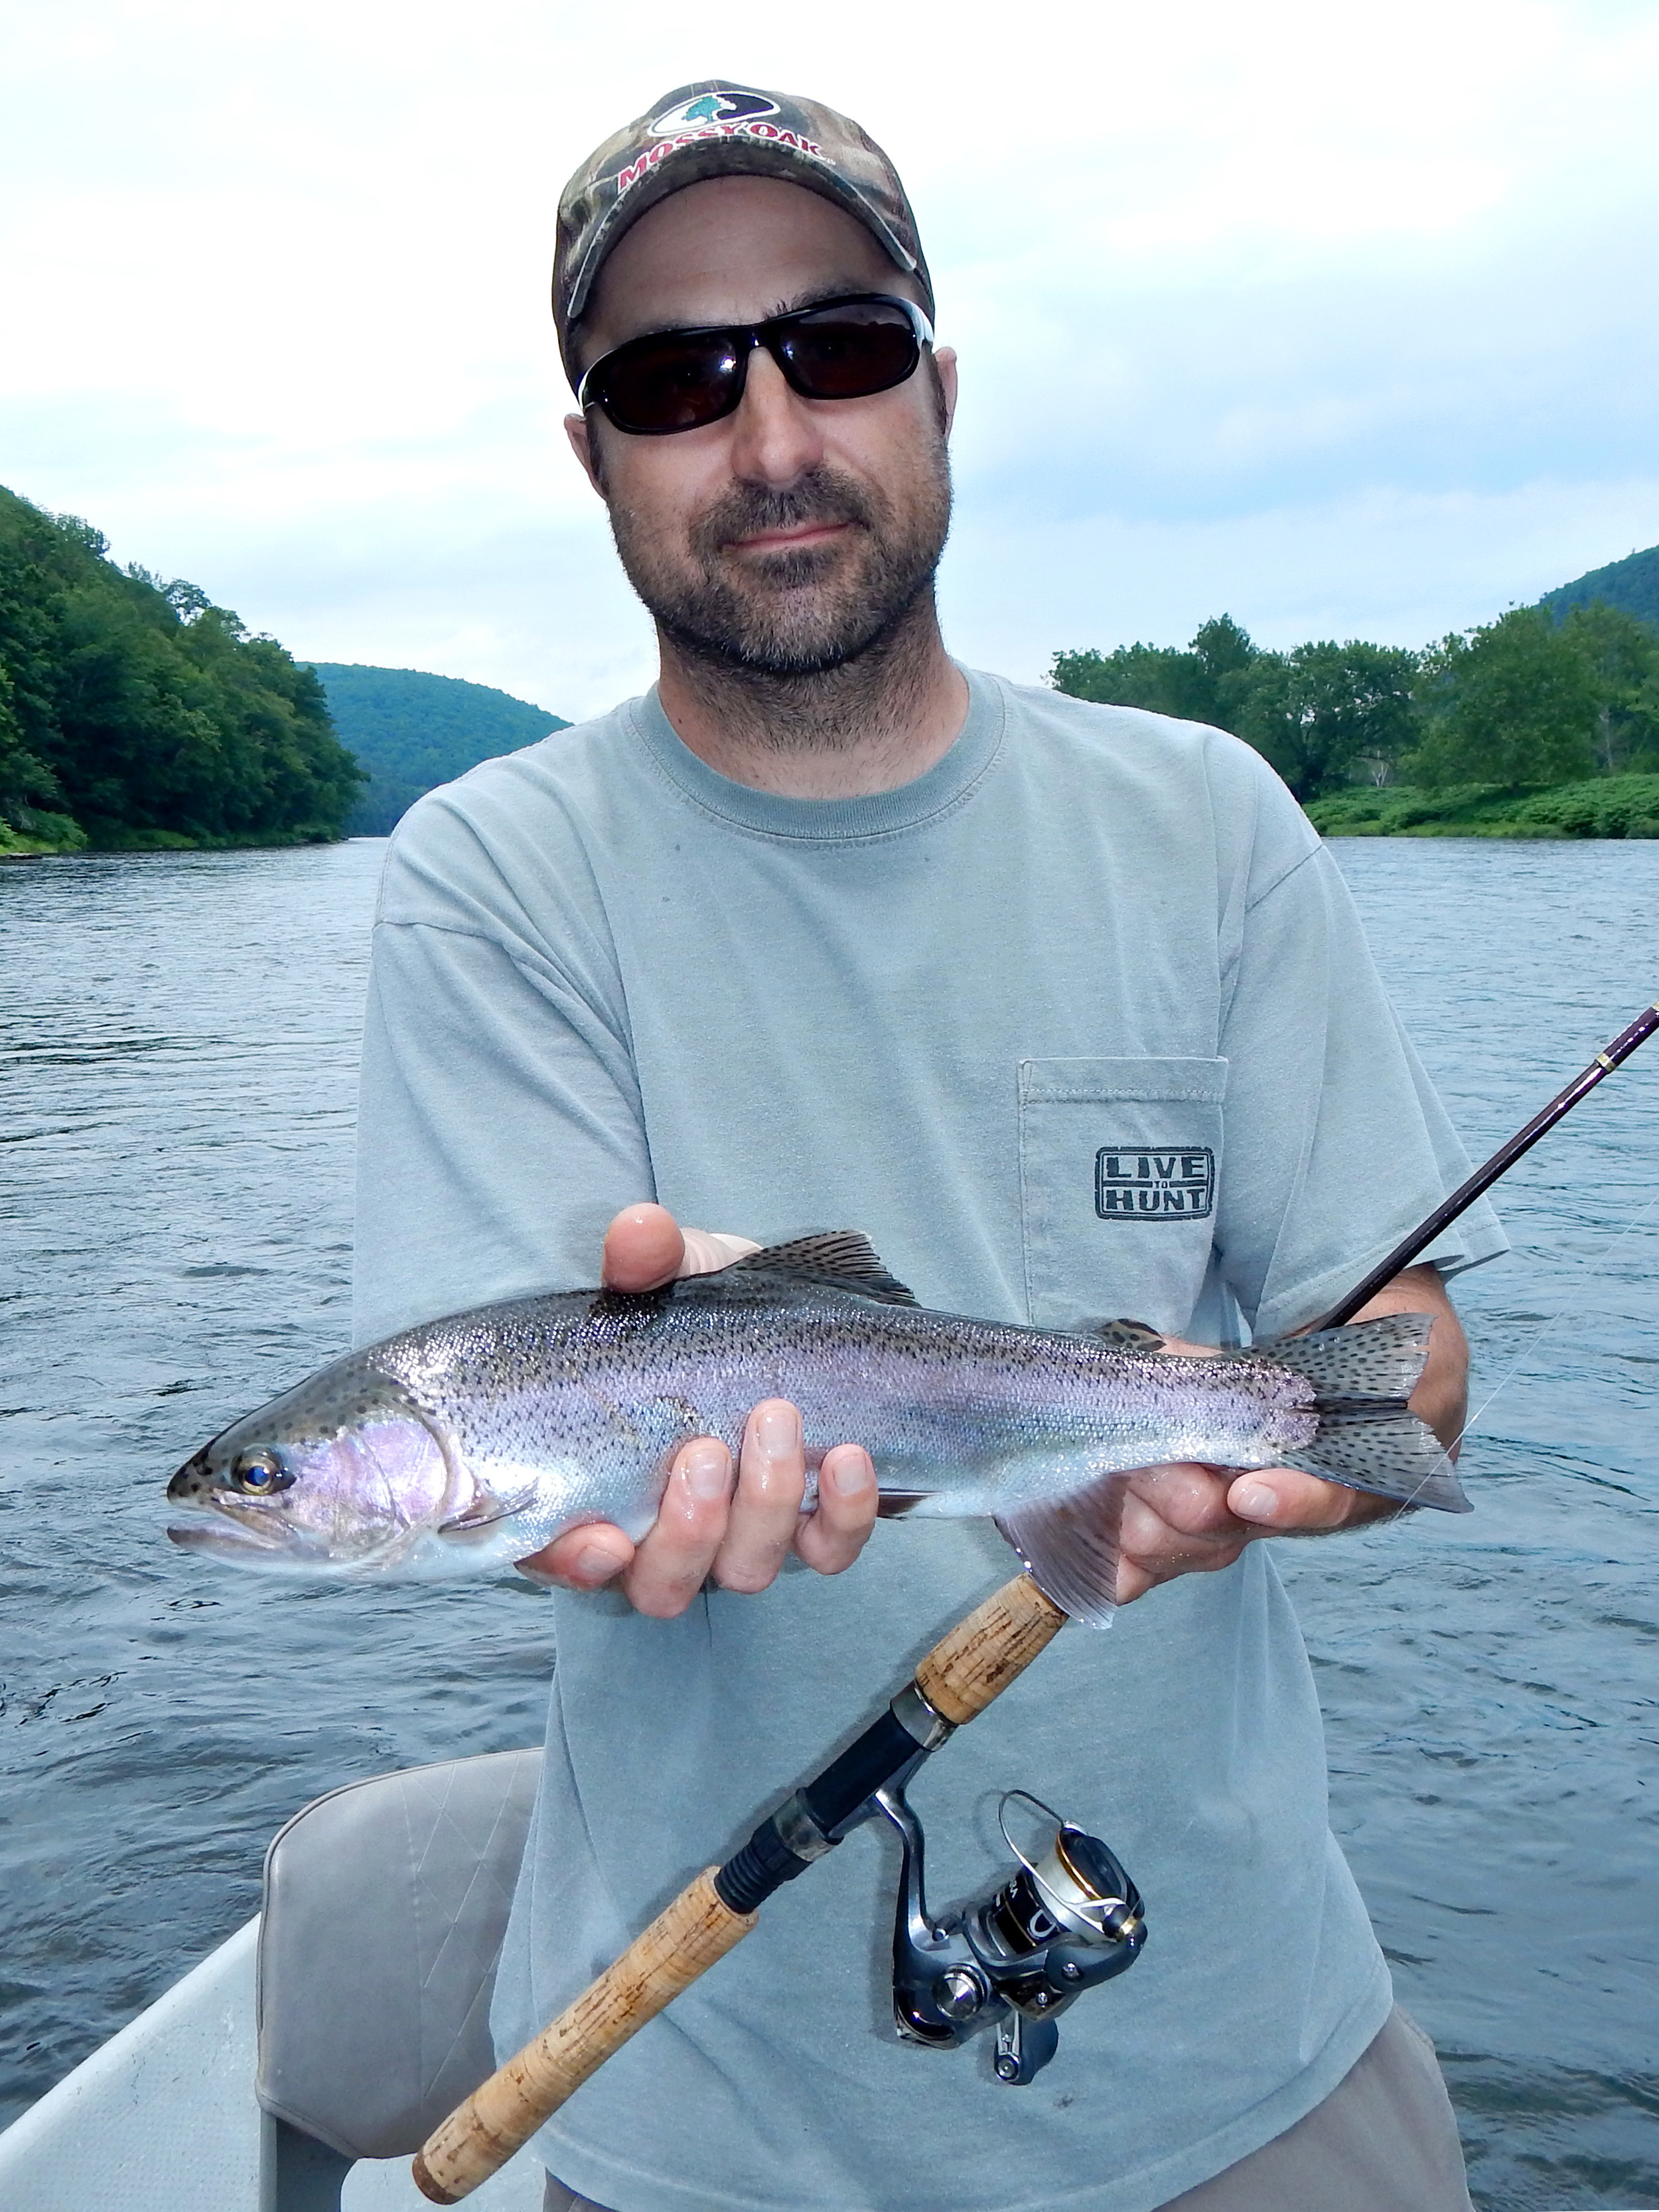 6/19/15 Ralph D. gets thiswild Delaware river rainbow trout! Beauty!